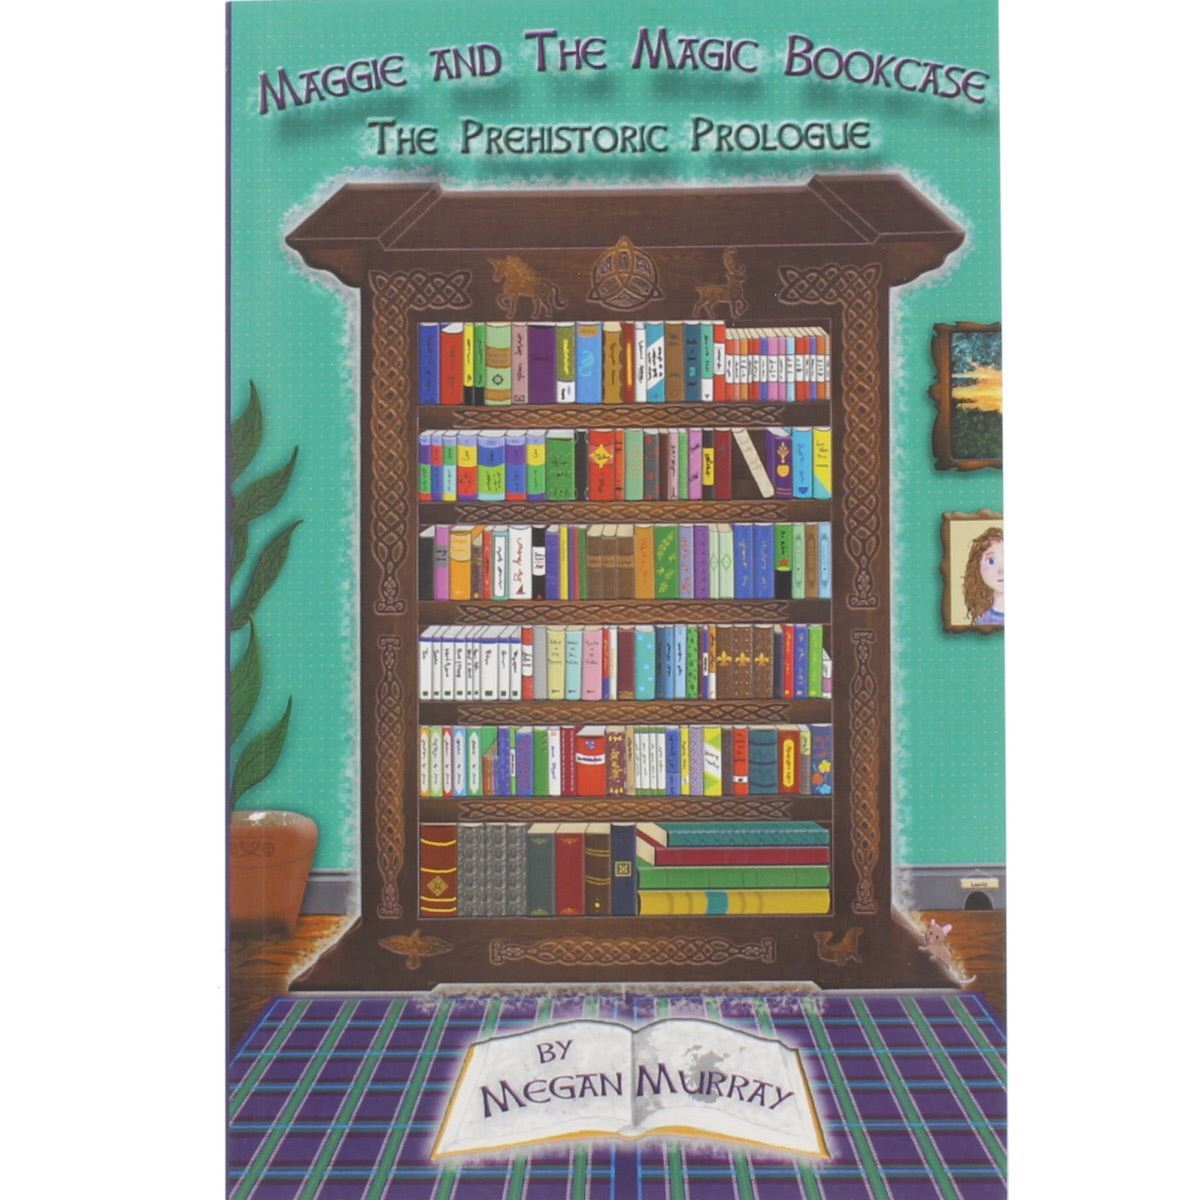 maggie-and-the-magic-bookcase-the-prehistoric-prologue